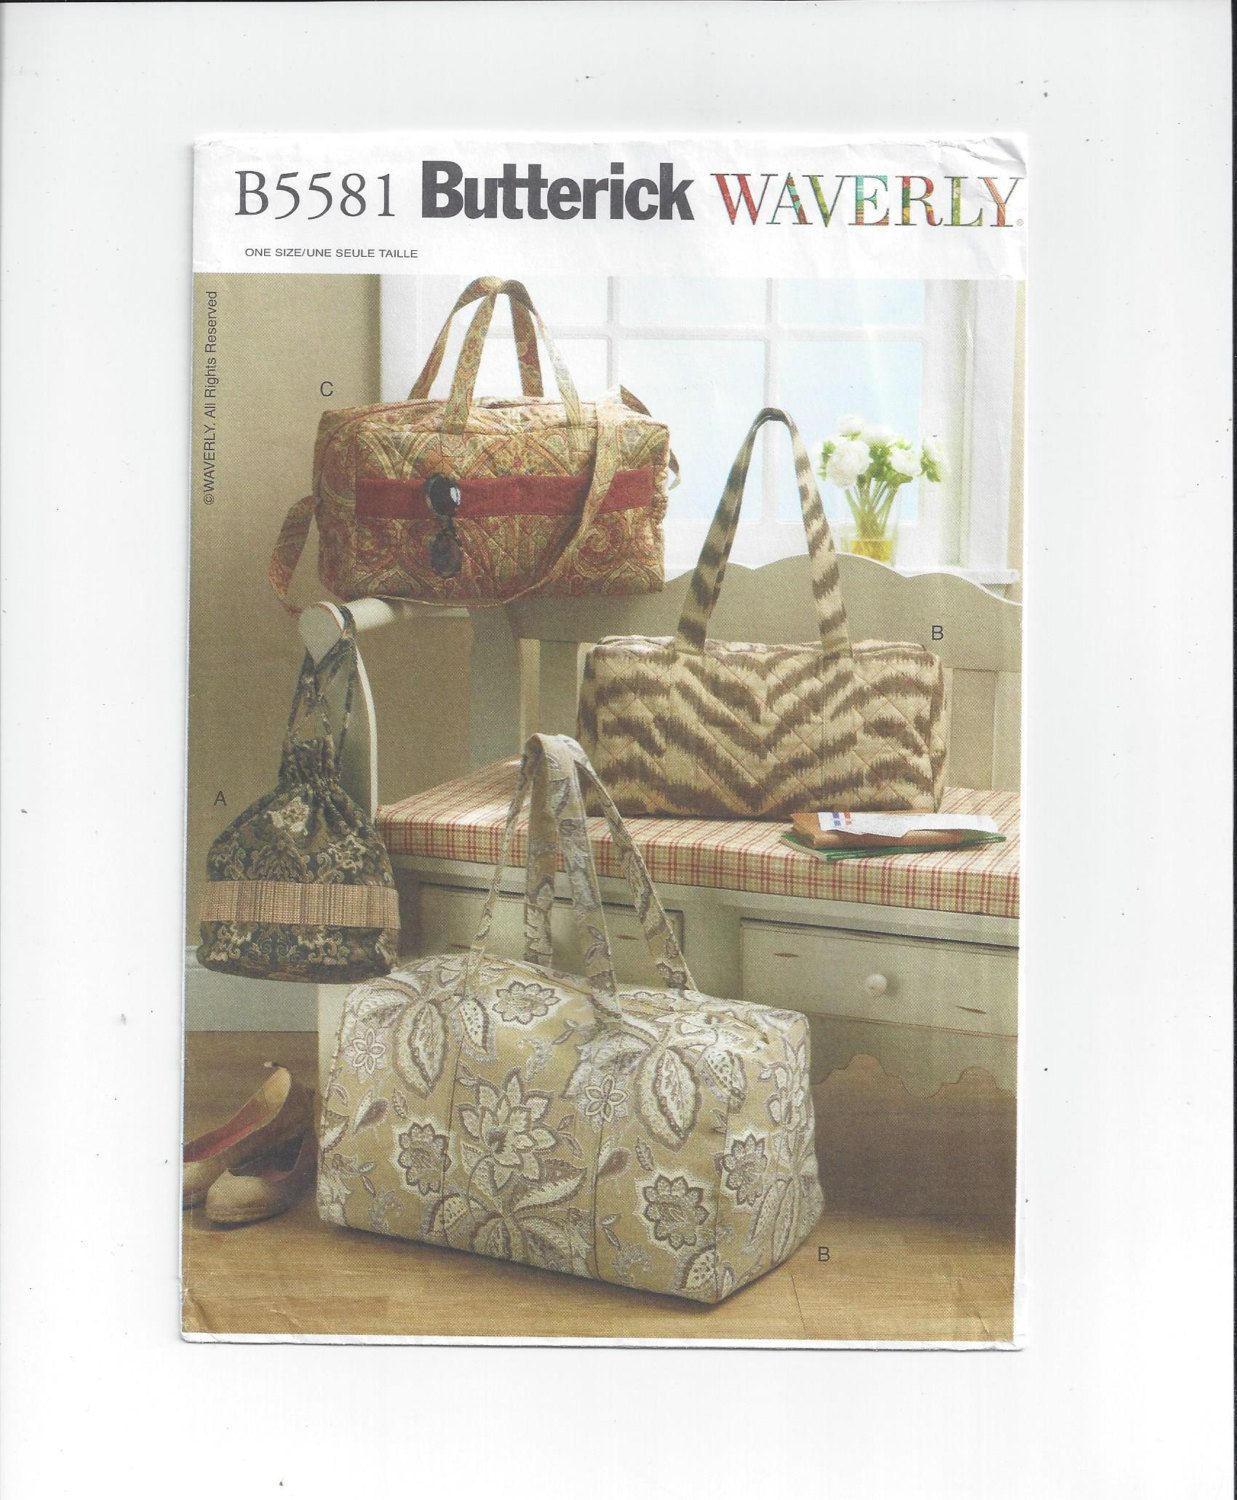 New Butterick 5581 Waverly Pattern for Drawstring & Duffle Bag ...